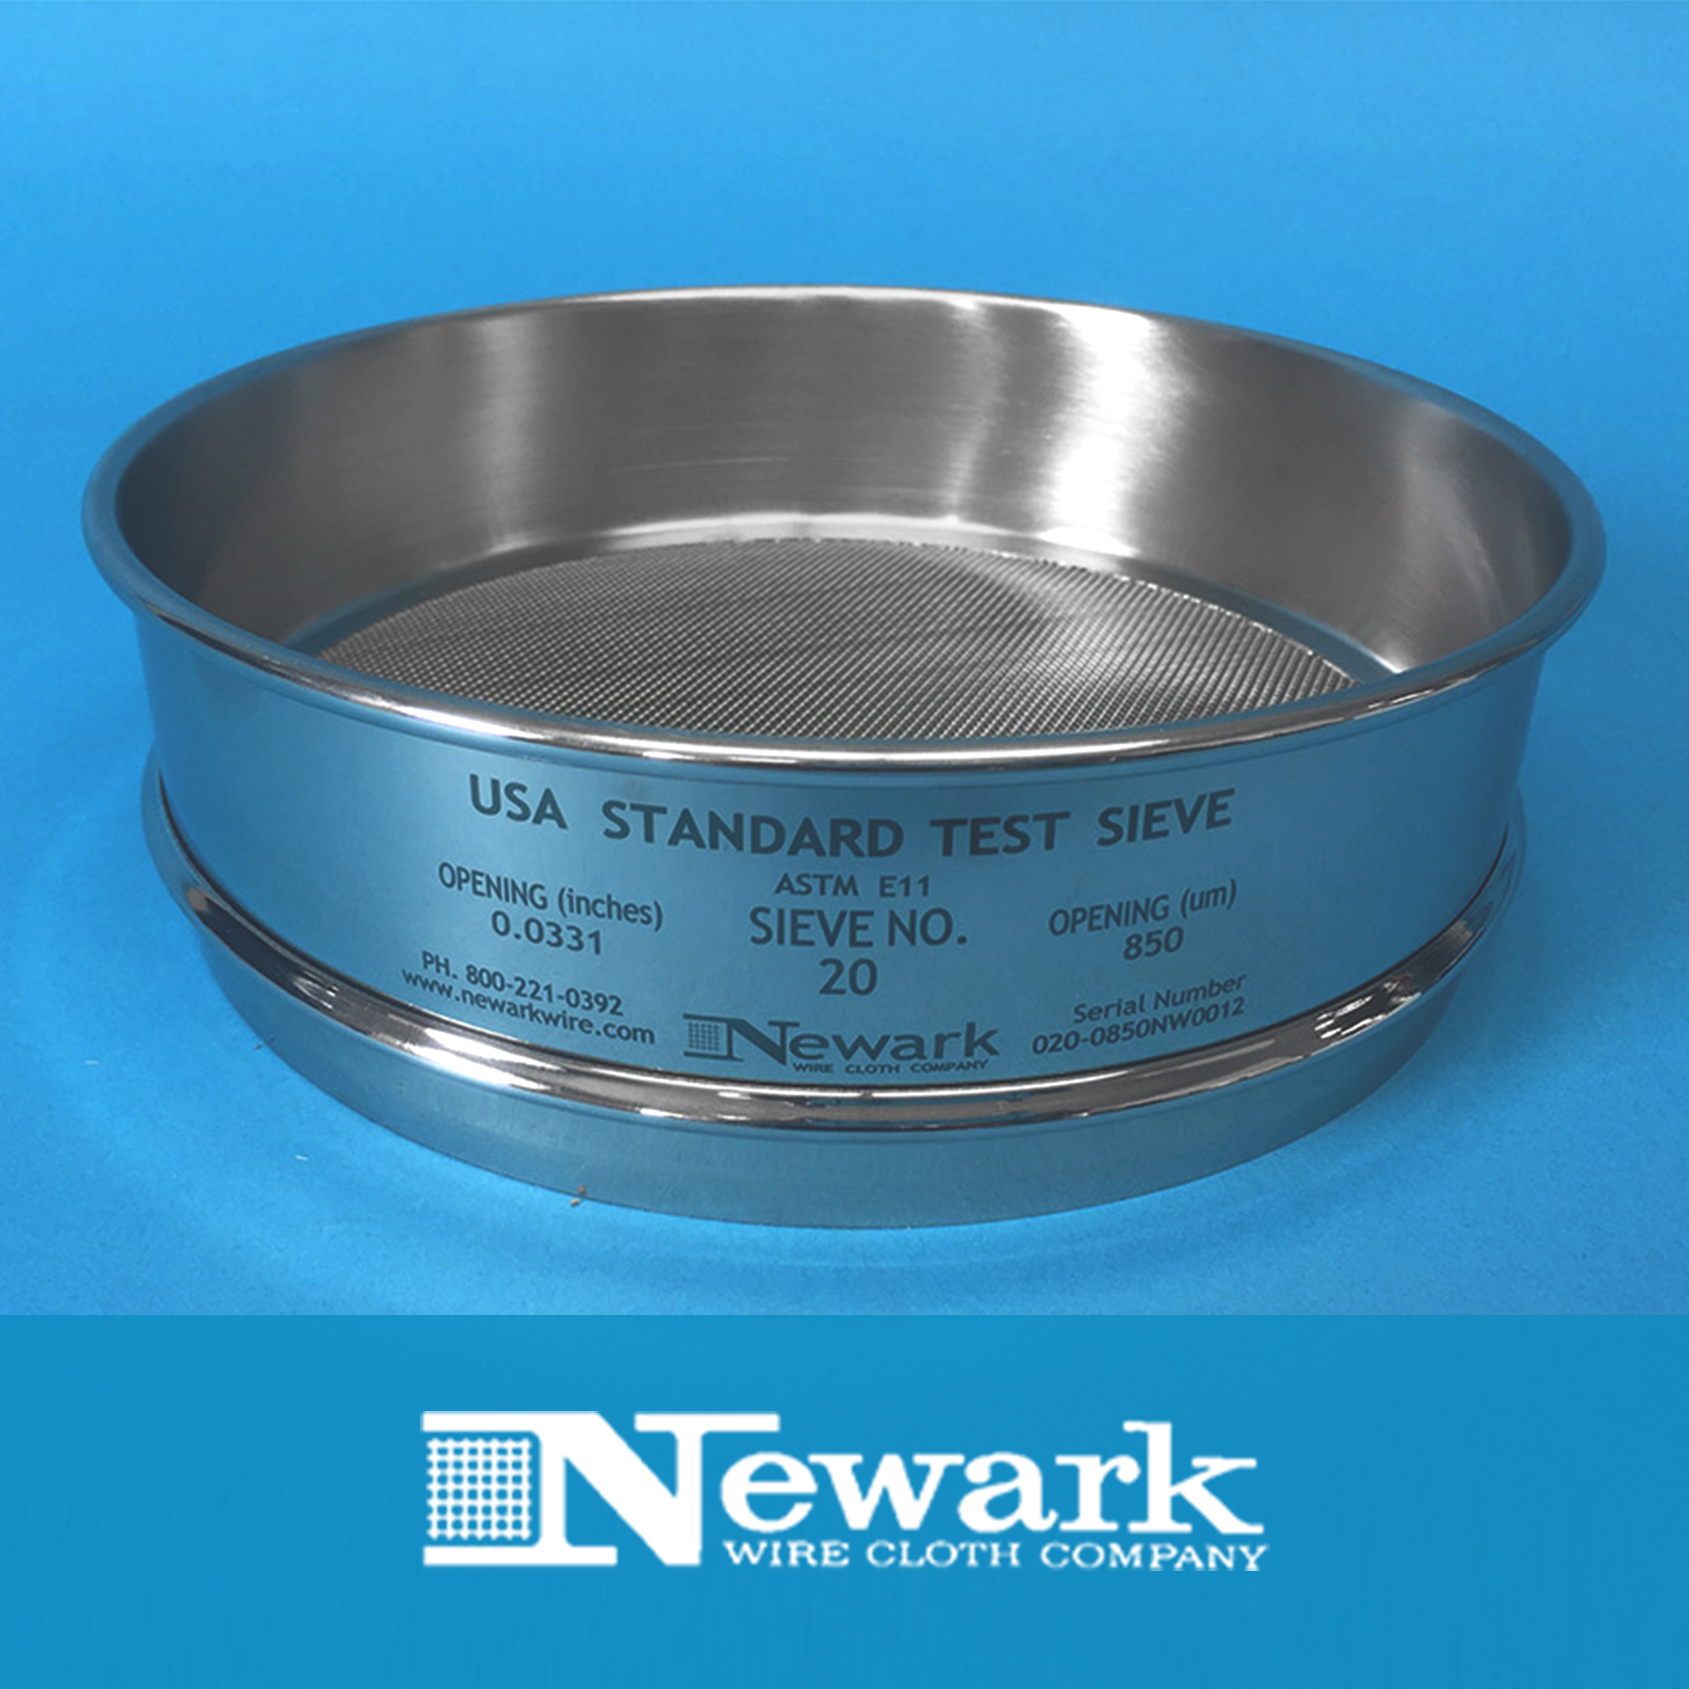 A Guide to ASTM E11 Standards | Test Sieves - Newark Wire